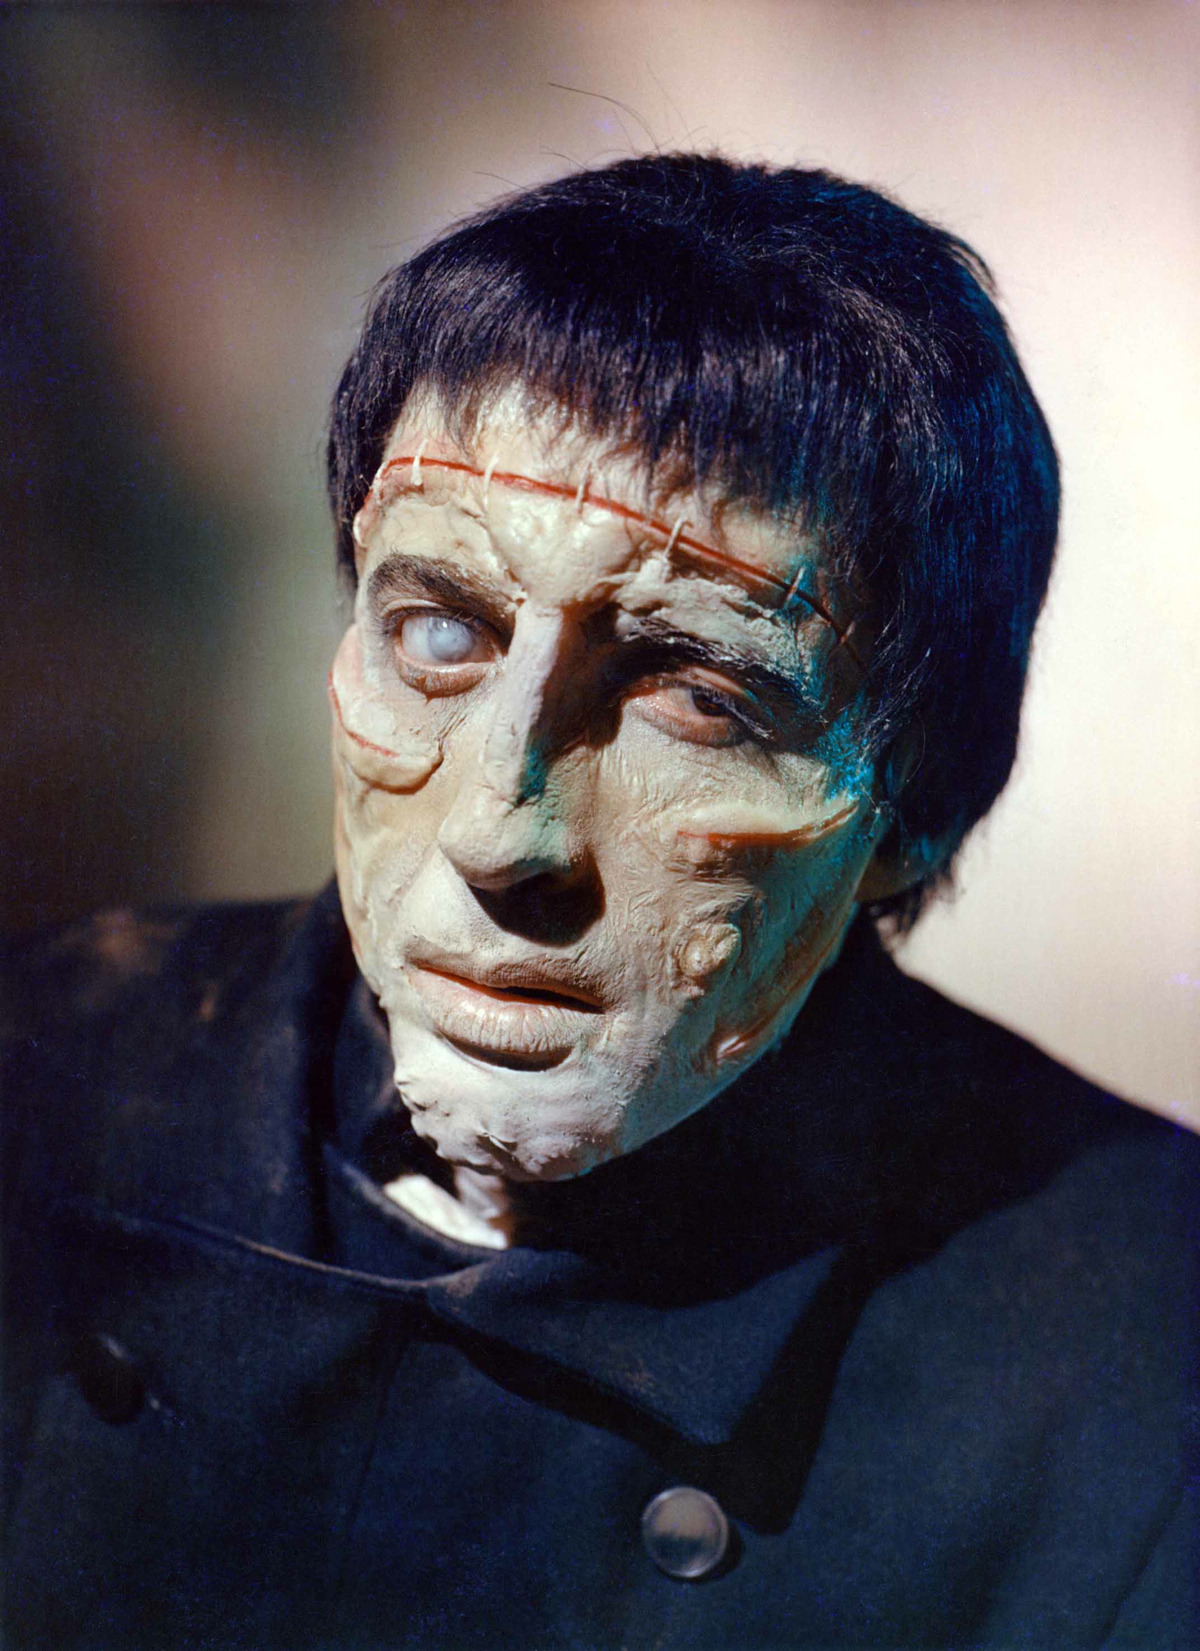 monsters-and-stuff:  Christopher Lee as The Creature The Curse of Frankenstein (1957)